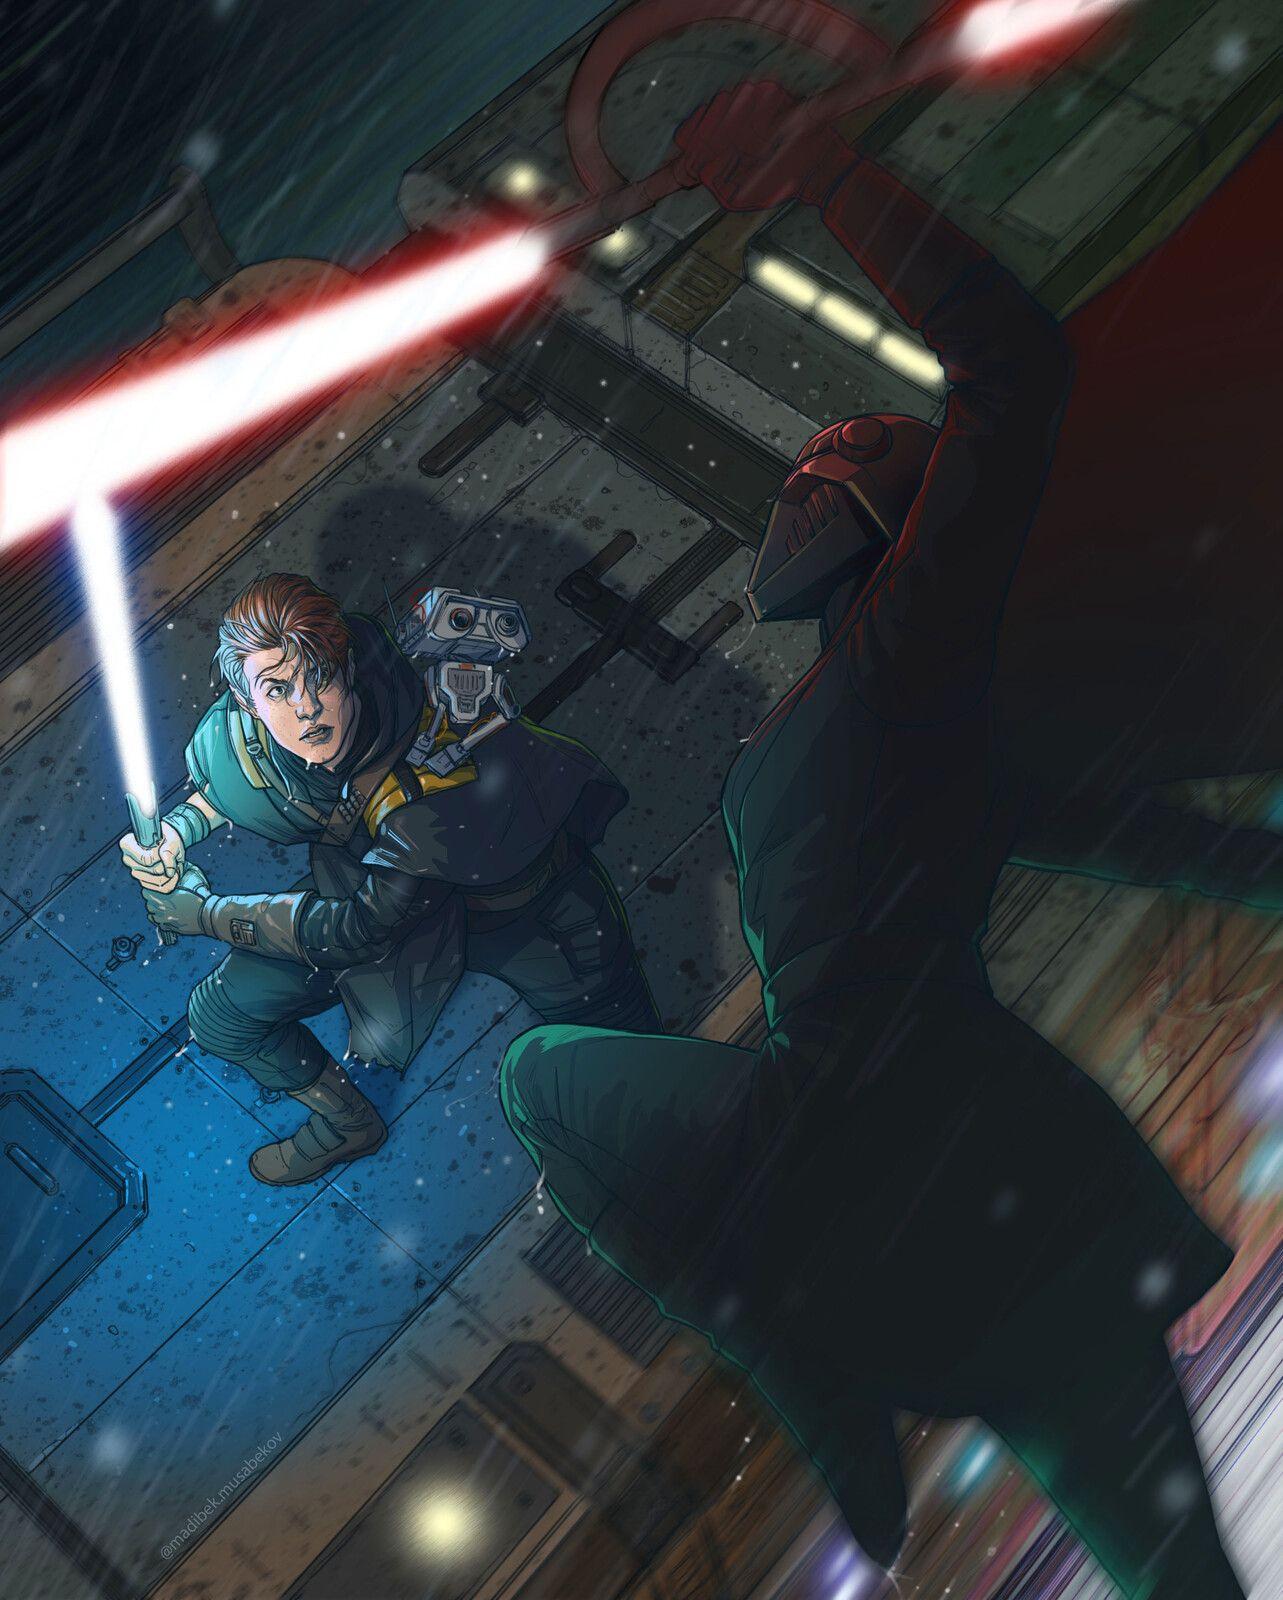 Pin By Lucilink On Star Wars In 2020 Star Wars Jedi Star Wars Wallpaper Star Wars Images